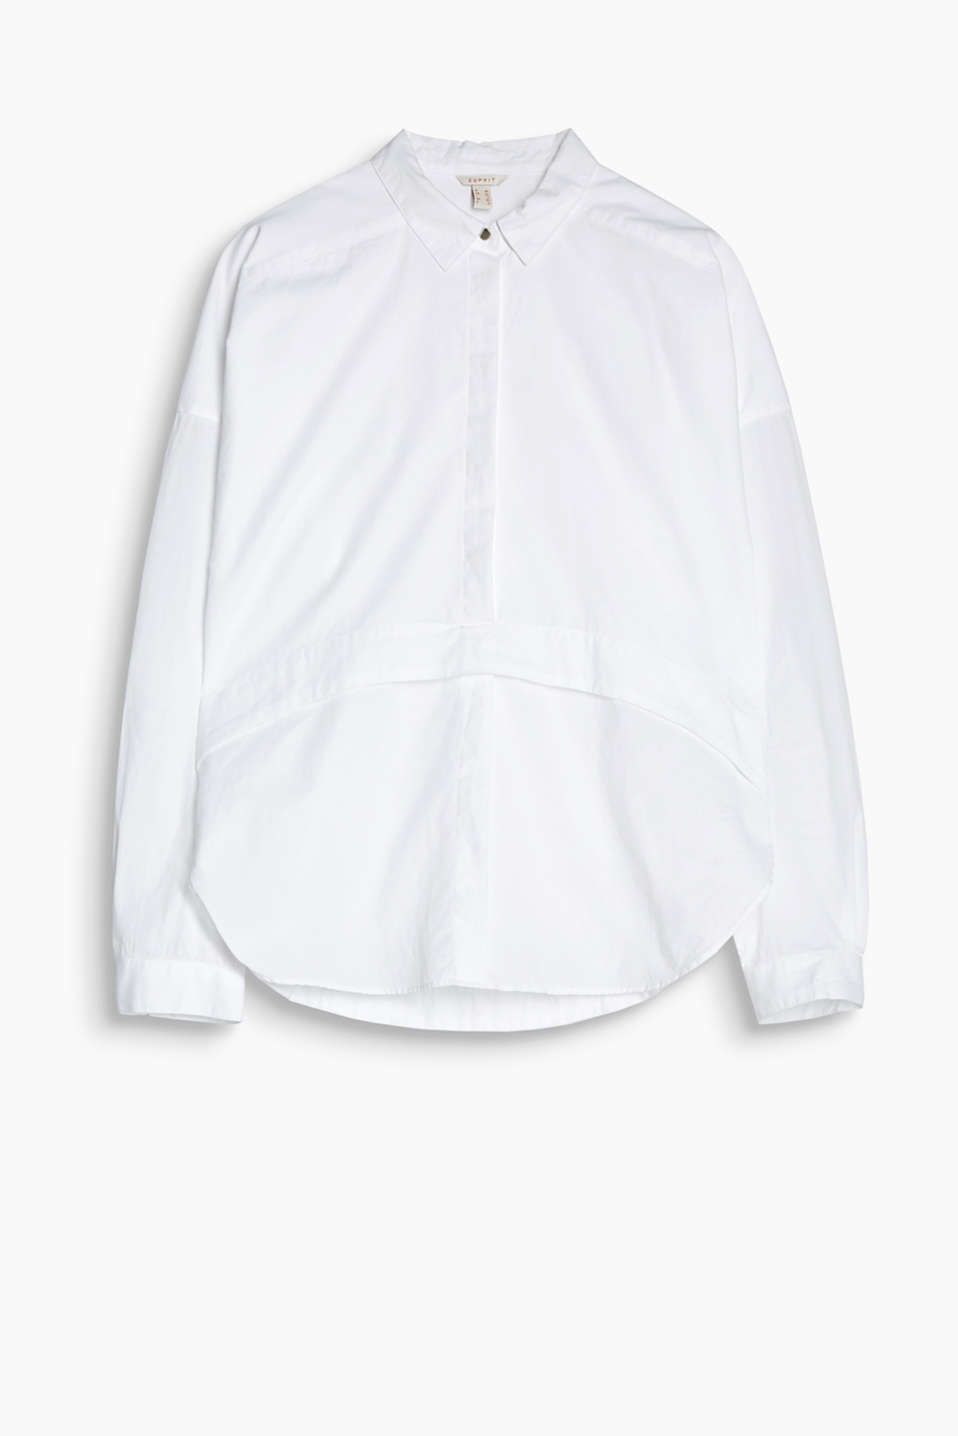 Always works with jeans: oversized blouse in cotton poplin with a rounded yoke